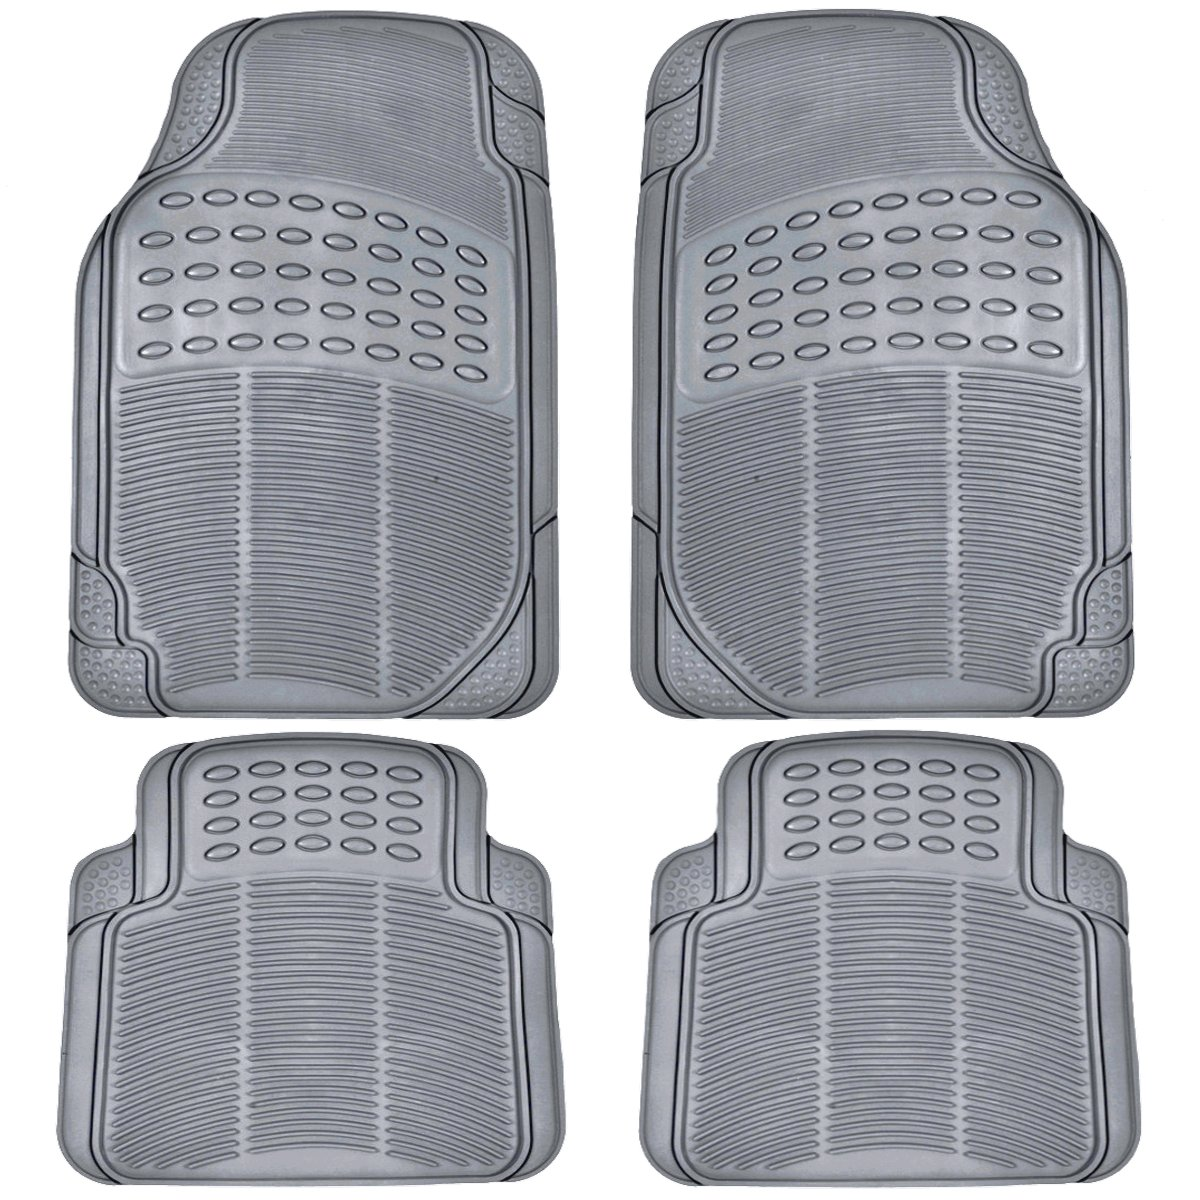 BDK All Weather Rubber Floor Mats for Car SUV & Truck - 4 Pieces Set (Front & Rear), Trimmable, Heavy Duty Protection (Grey) by BDK